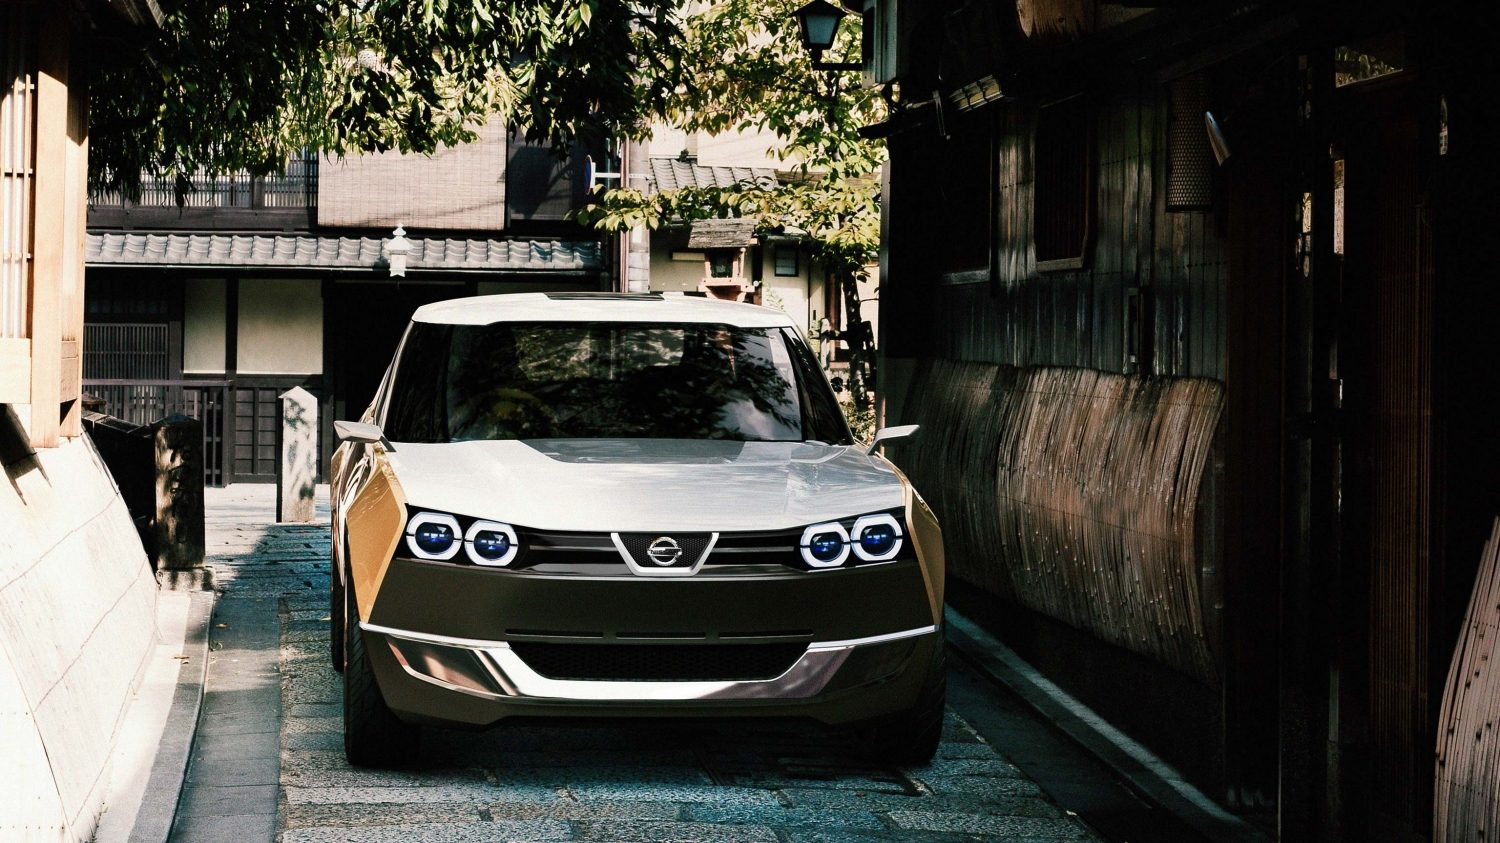 Nissan IDX Freeflow Concept straight front city street in Japan